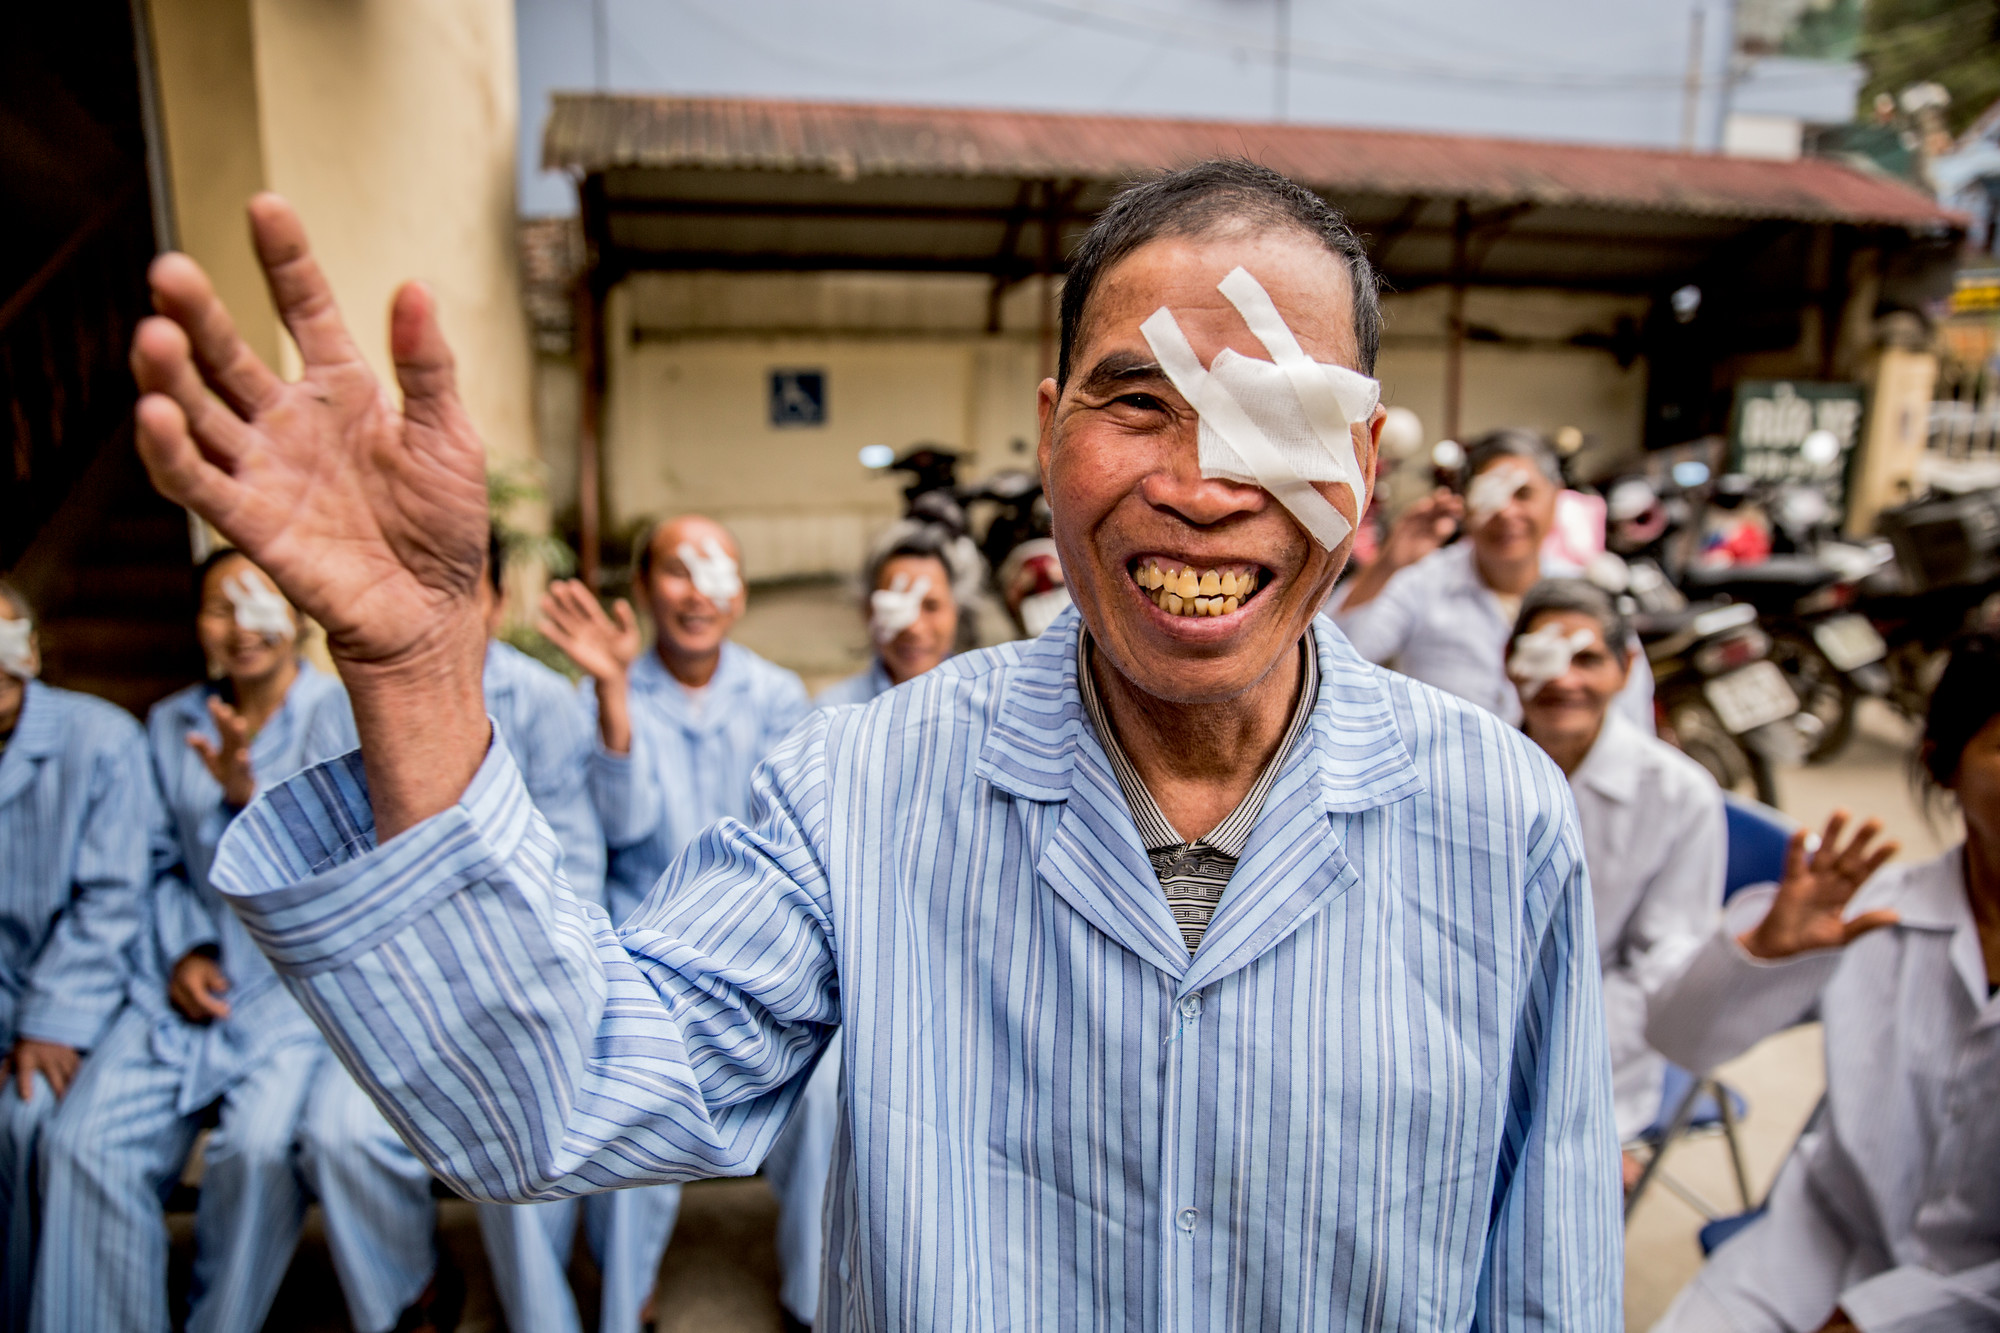 Khut smiling and waving, in a blue hospital gown with an eye patch over his left eye